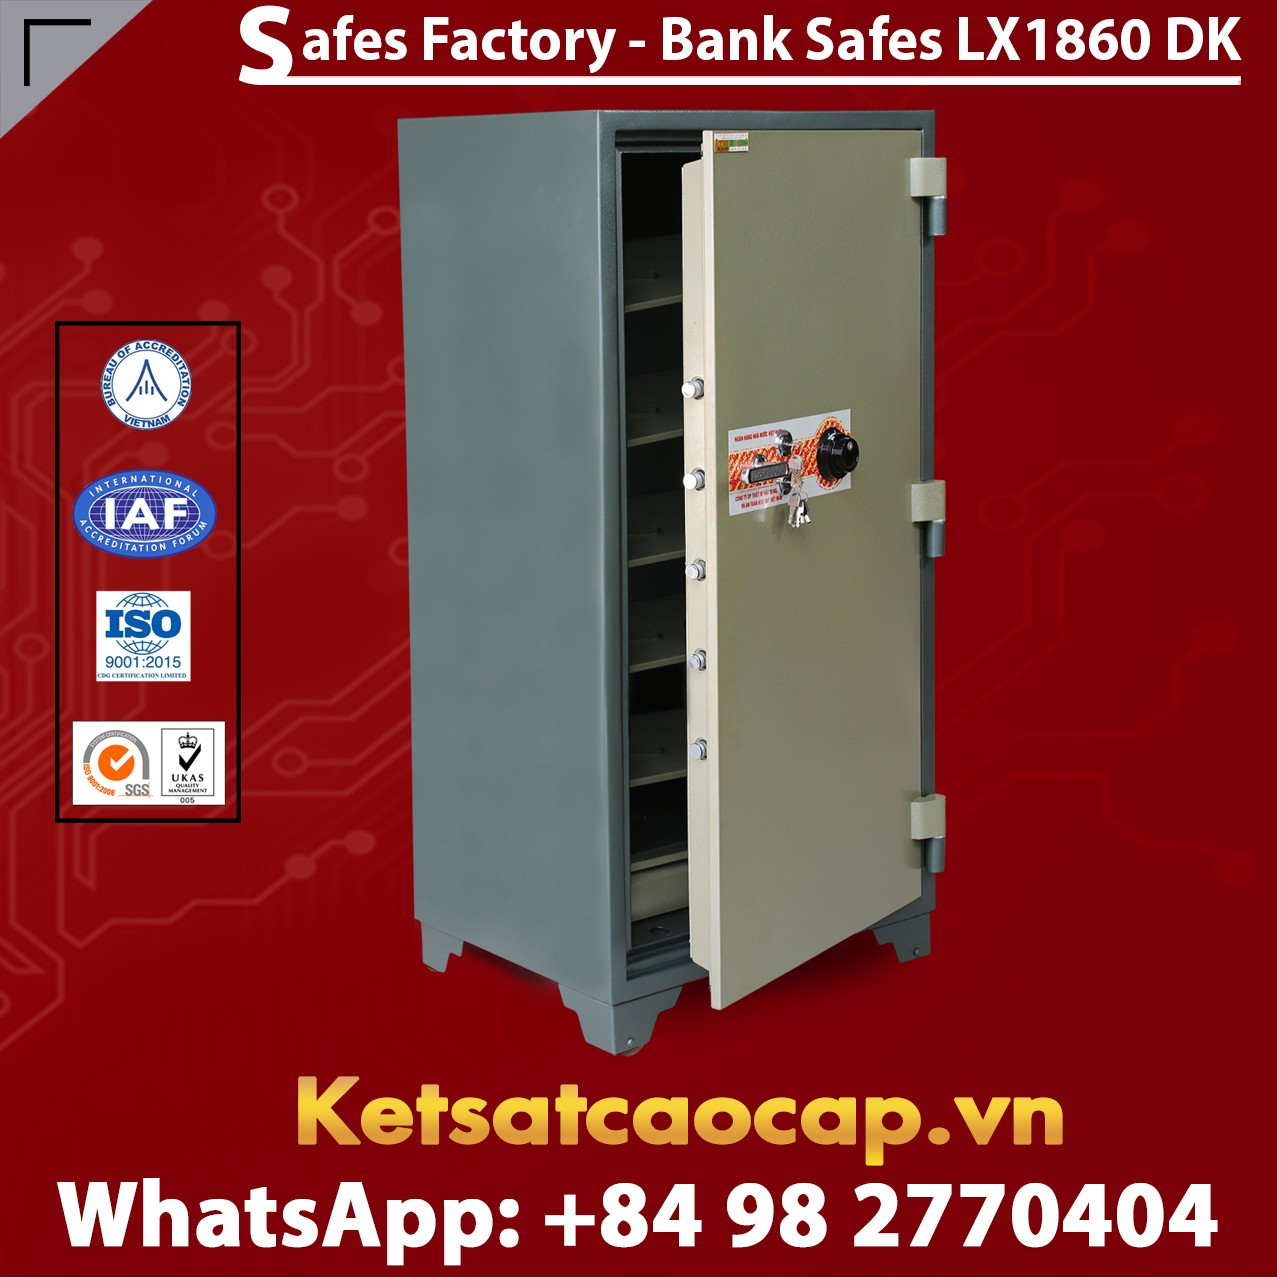 Bank Safes LX1860 DK Top High Security Bank Safes Box - Factory Price